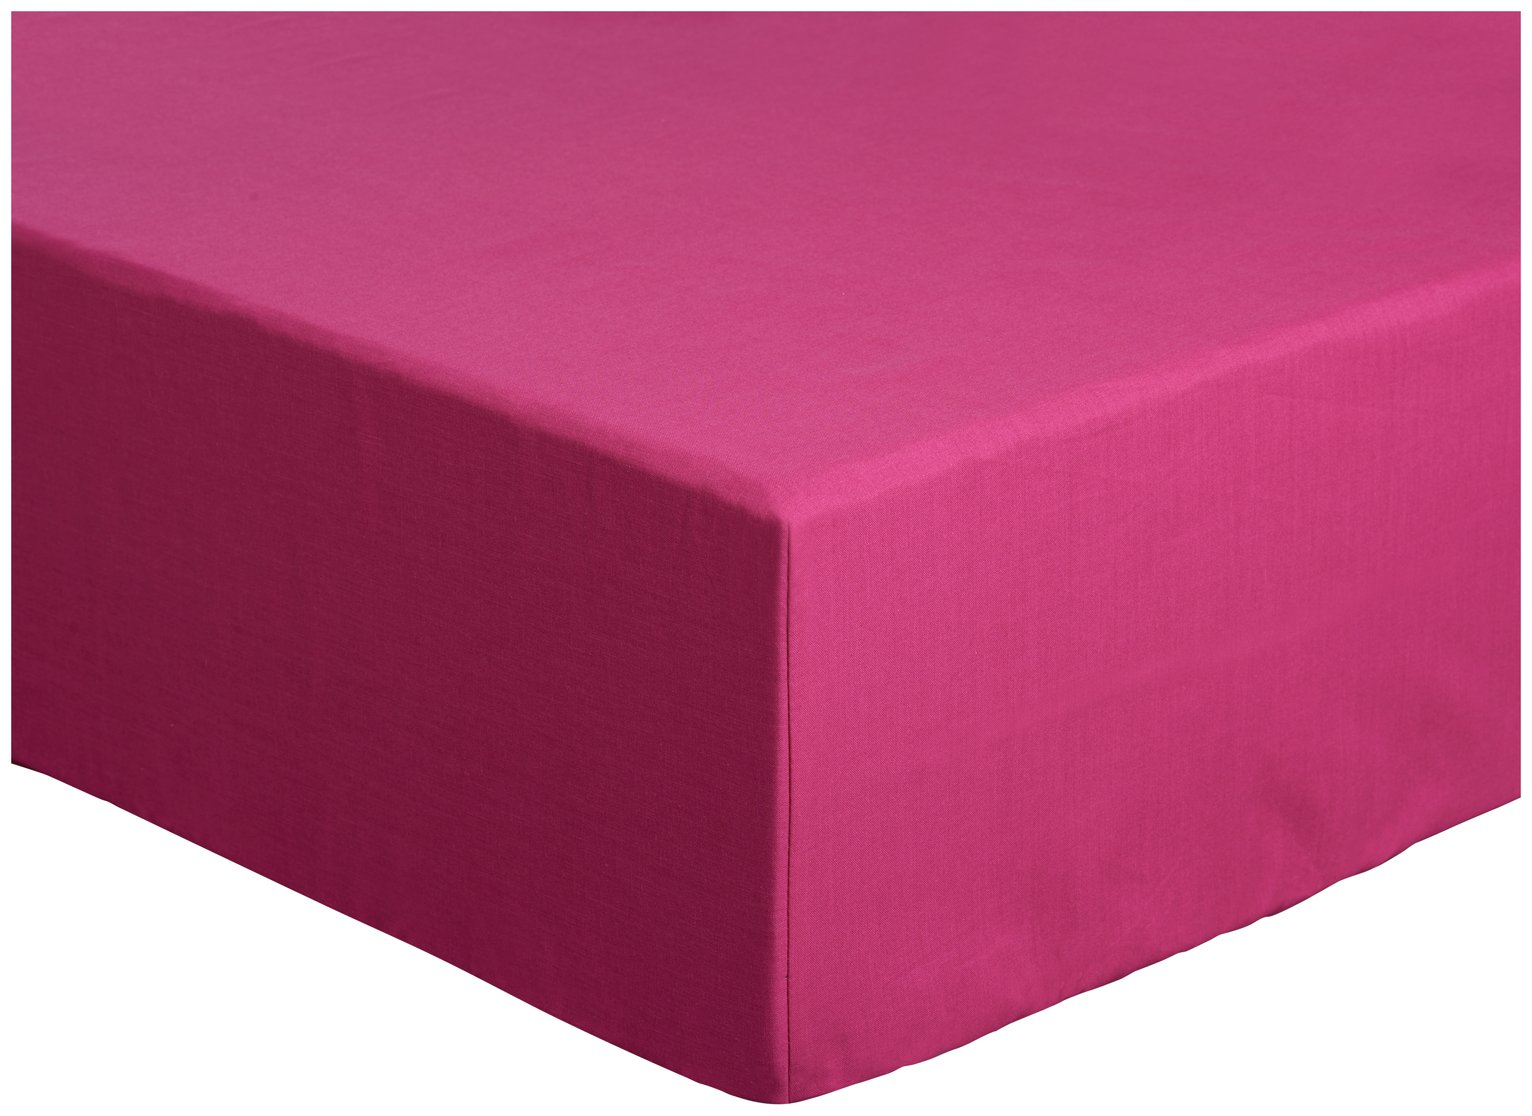 Argos Home Easycare Polycotton 28cm Fitted Sheet - Single